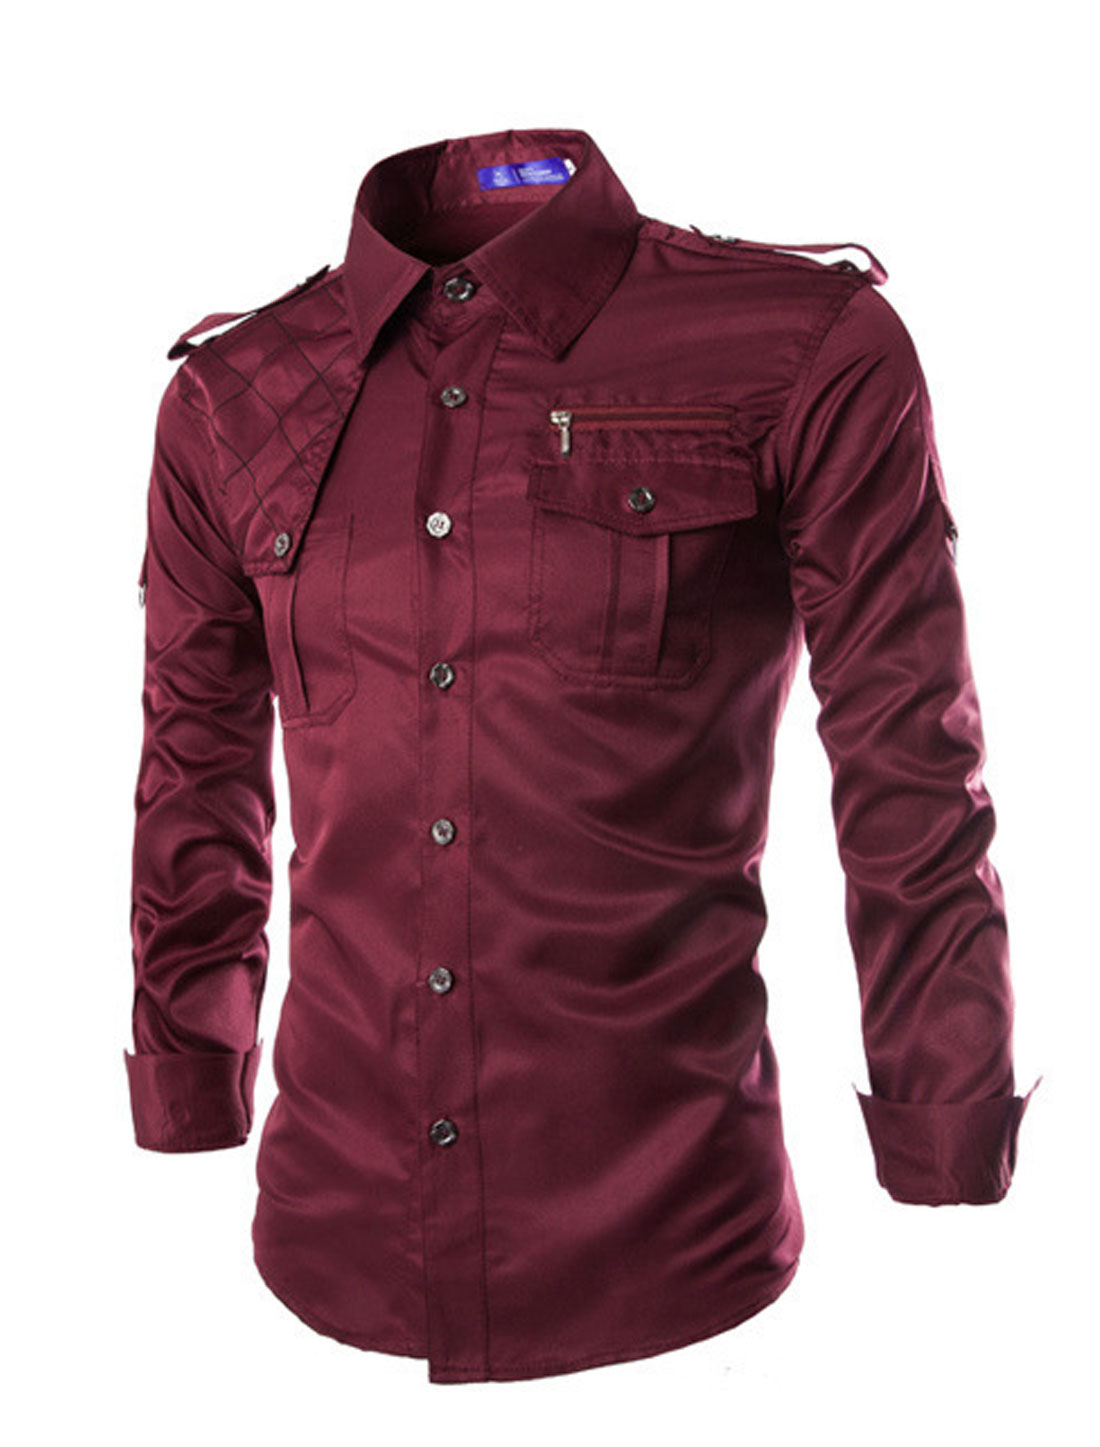 Men Long Sleeves Quilted Detail Button Down Shirts Burgundy M